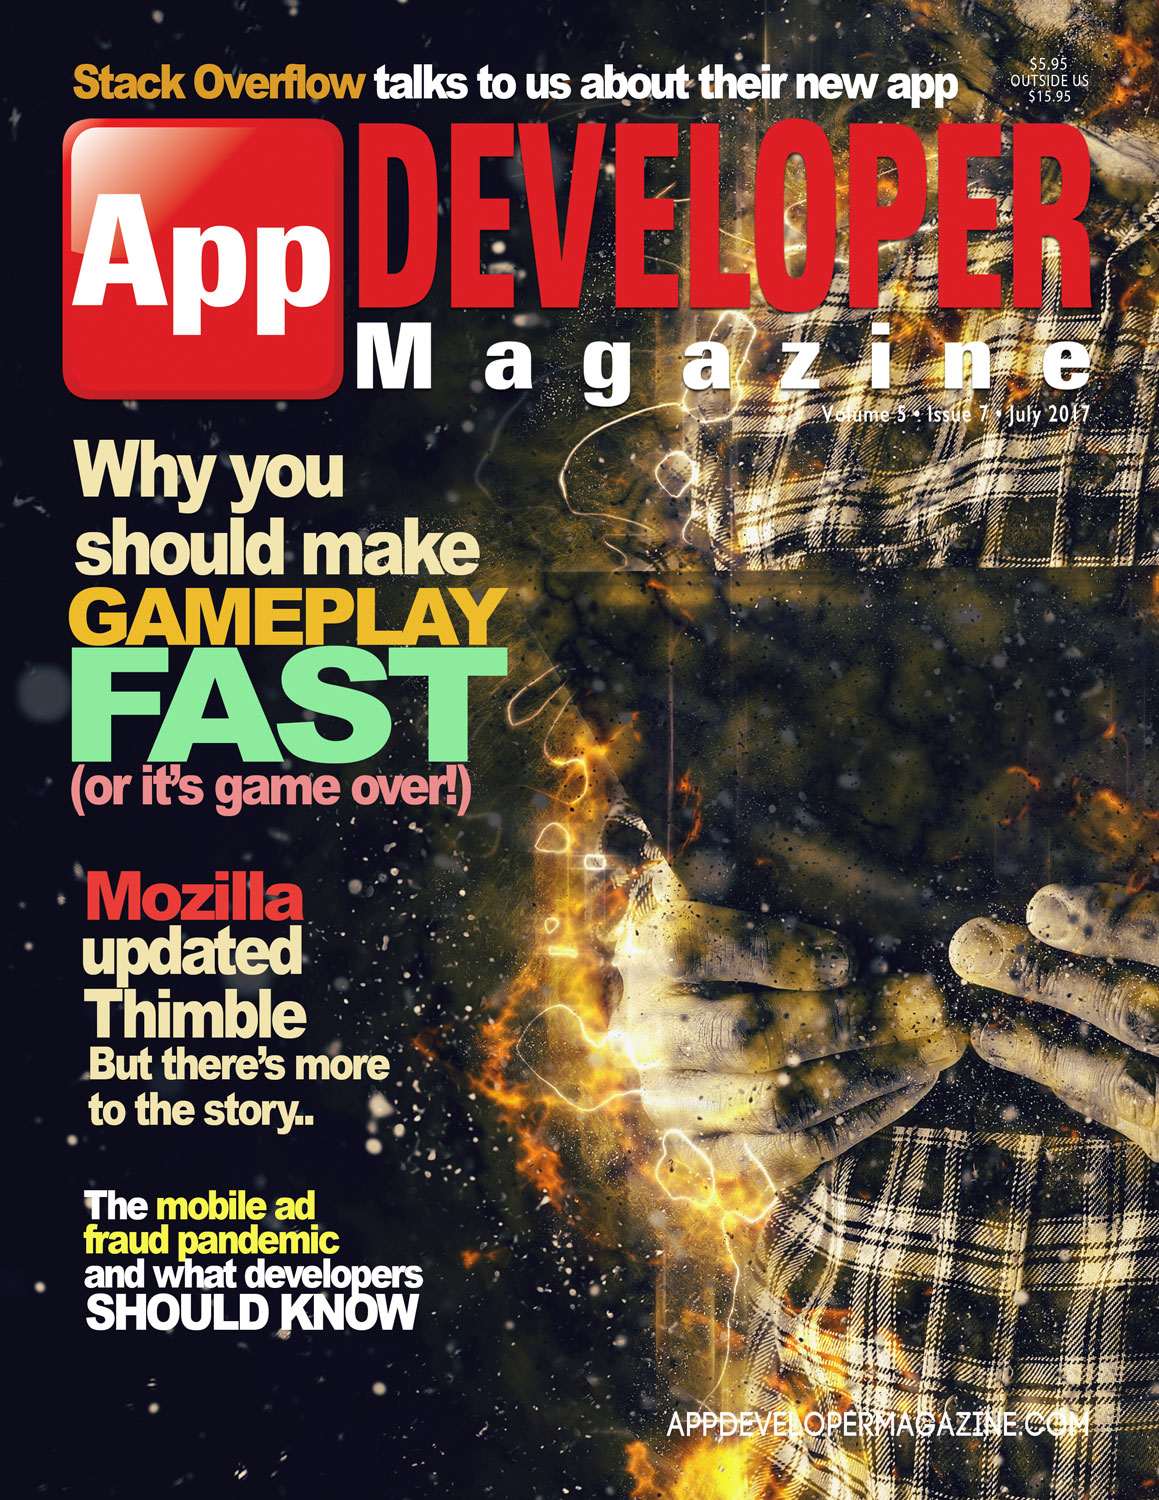 App Developer Magazine July 2017